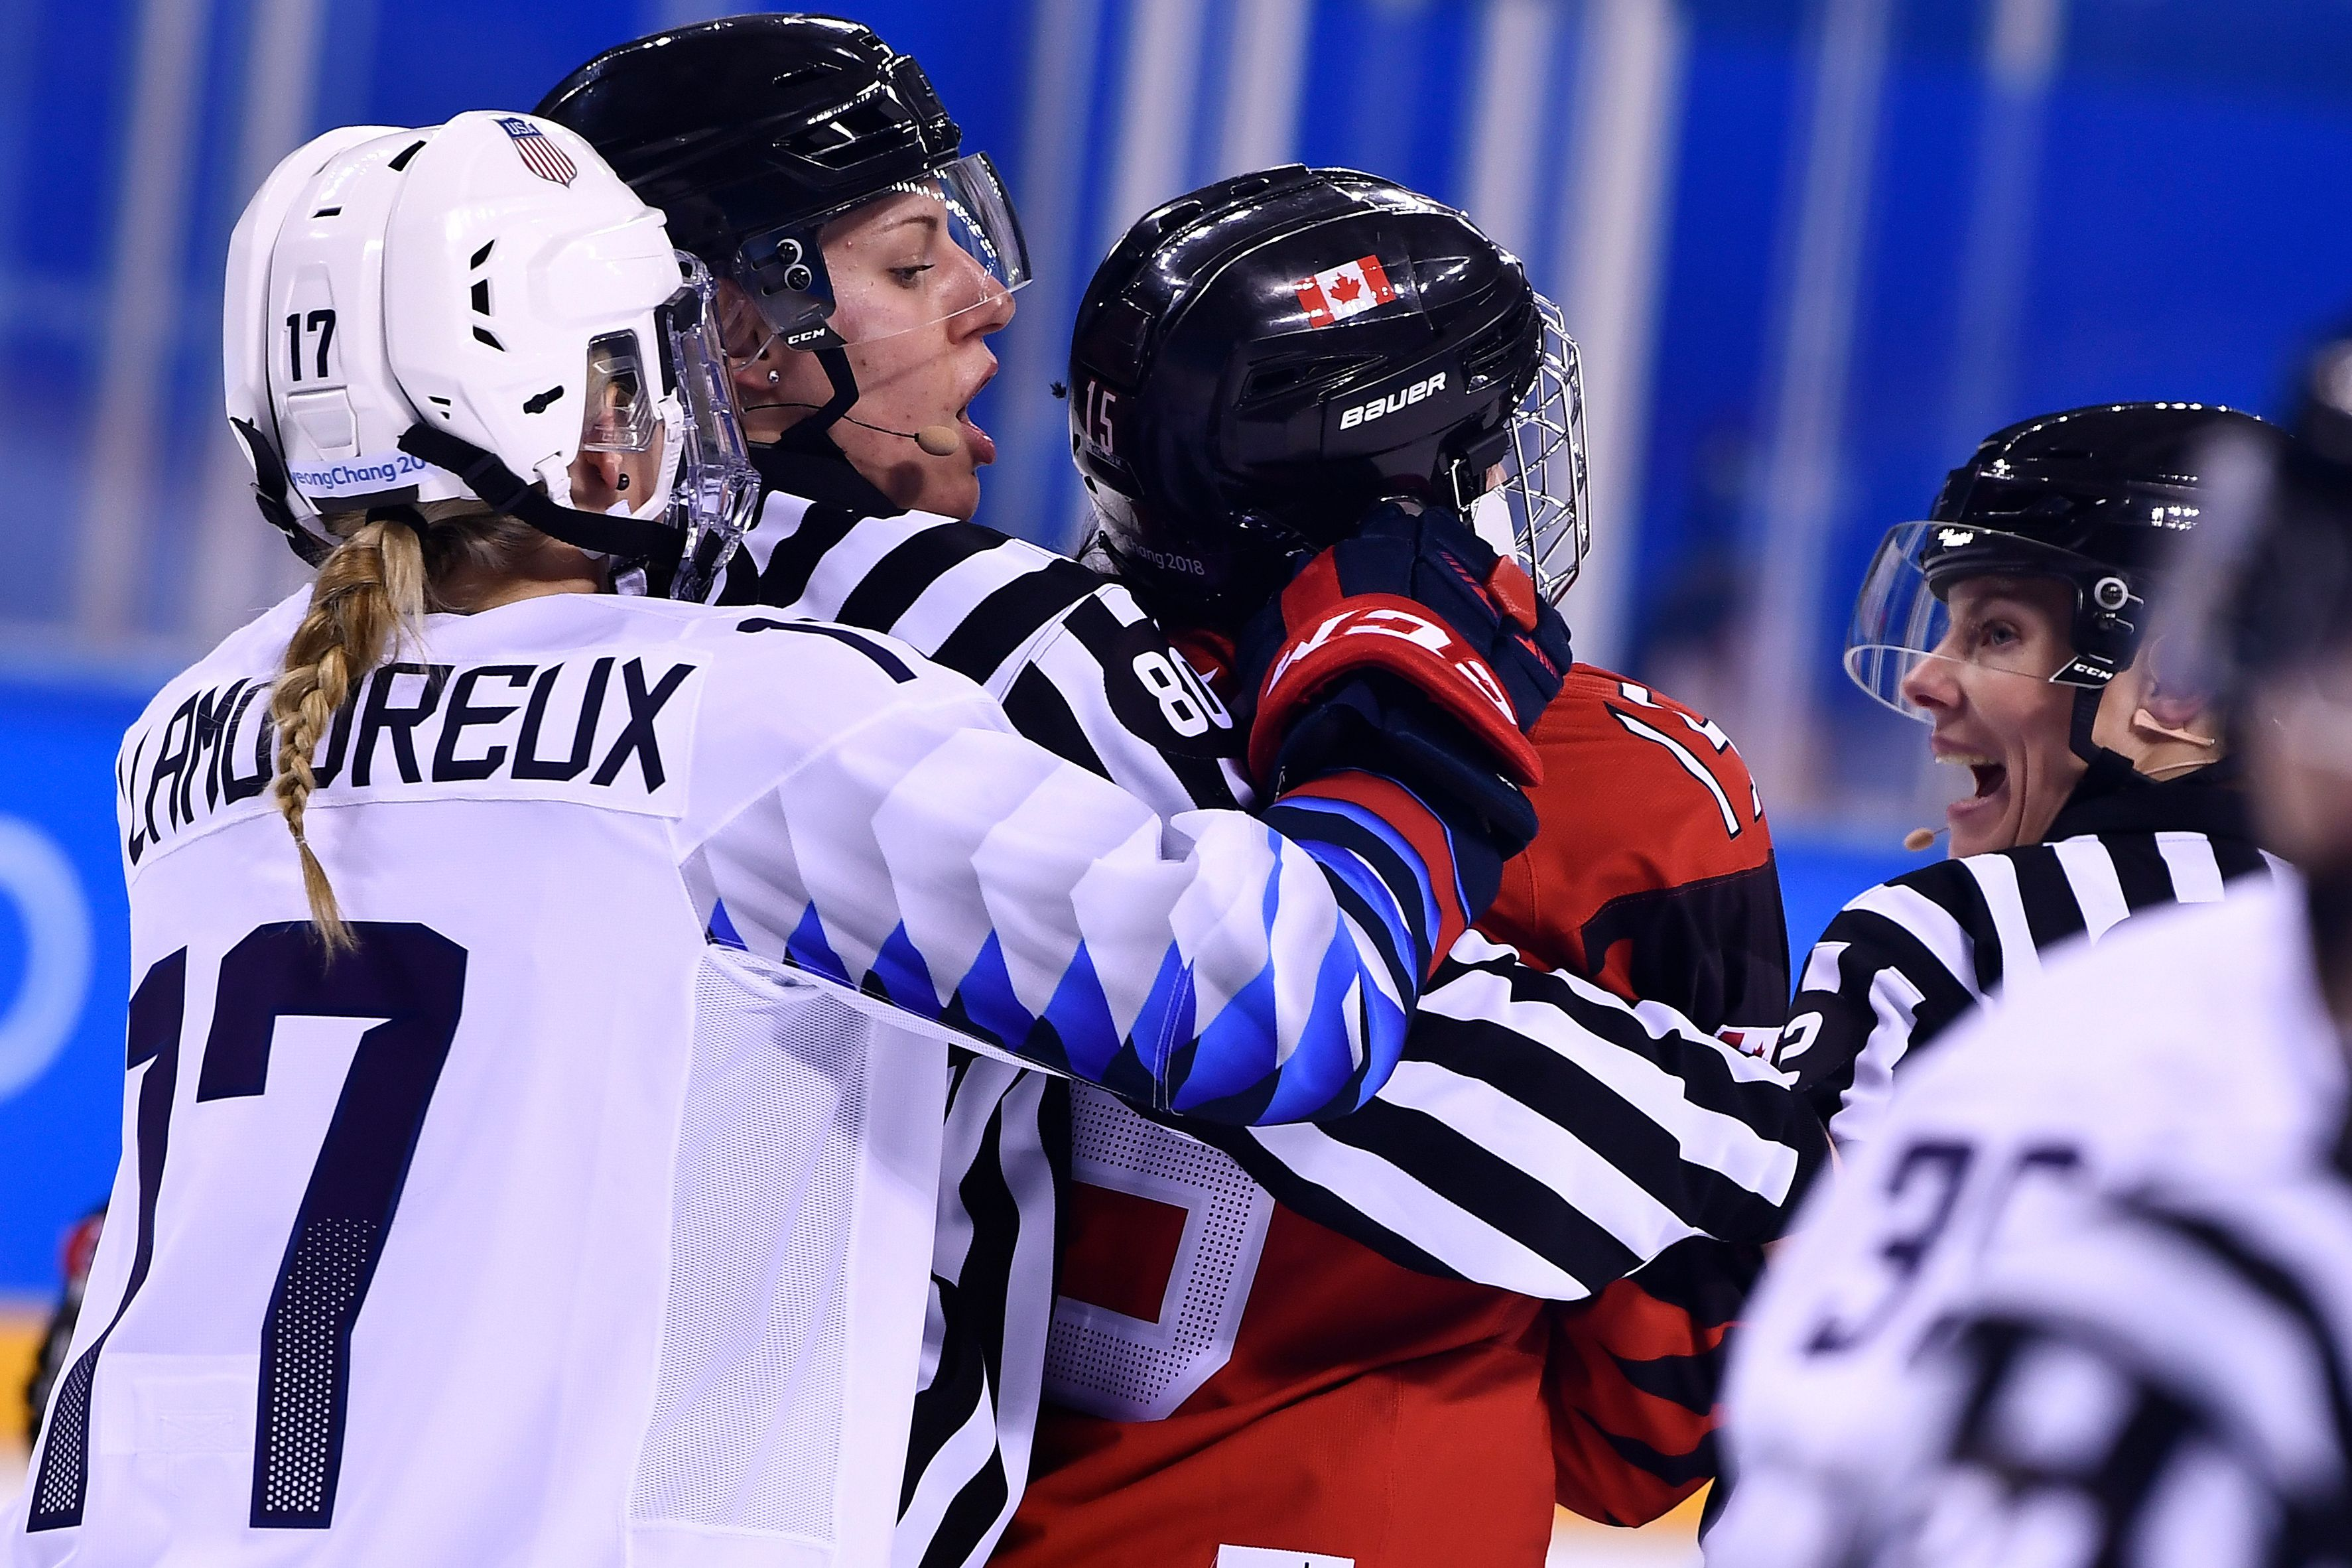 USA's Jocelyne Lamoureux-Davidson (L) pulls on Canada's Melodie Daoust's helmet in the women's preliminary round ice hockey match between the US and Canada during the Pyeongchang 2018 Winter Olympic Games